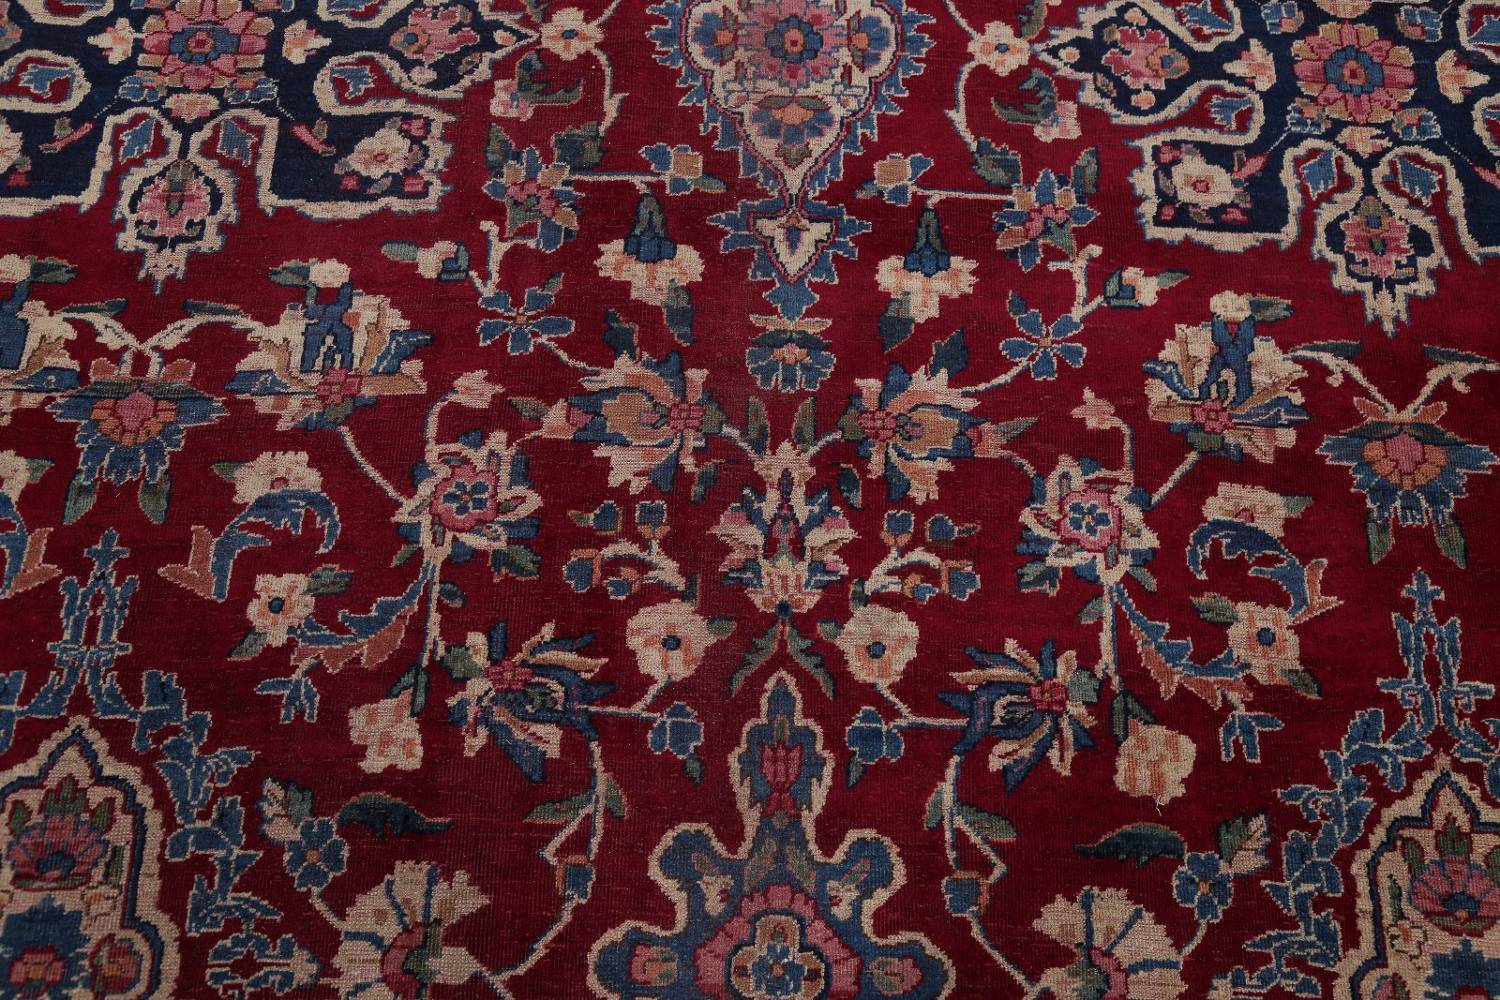 All-Over Floral 11x16 Yazd Persian Area Rug image 12